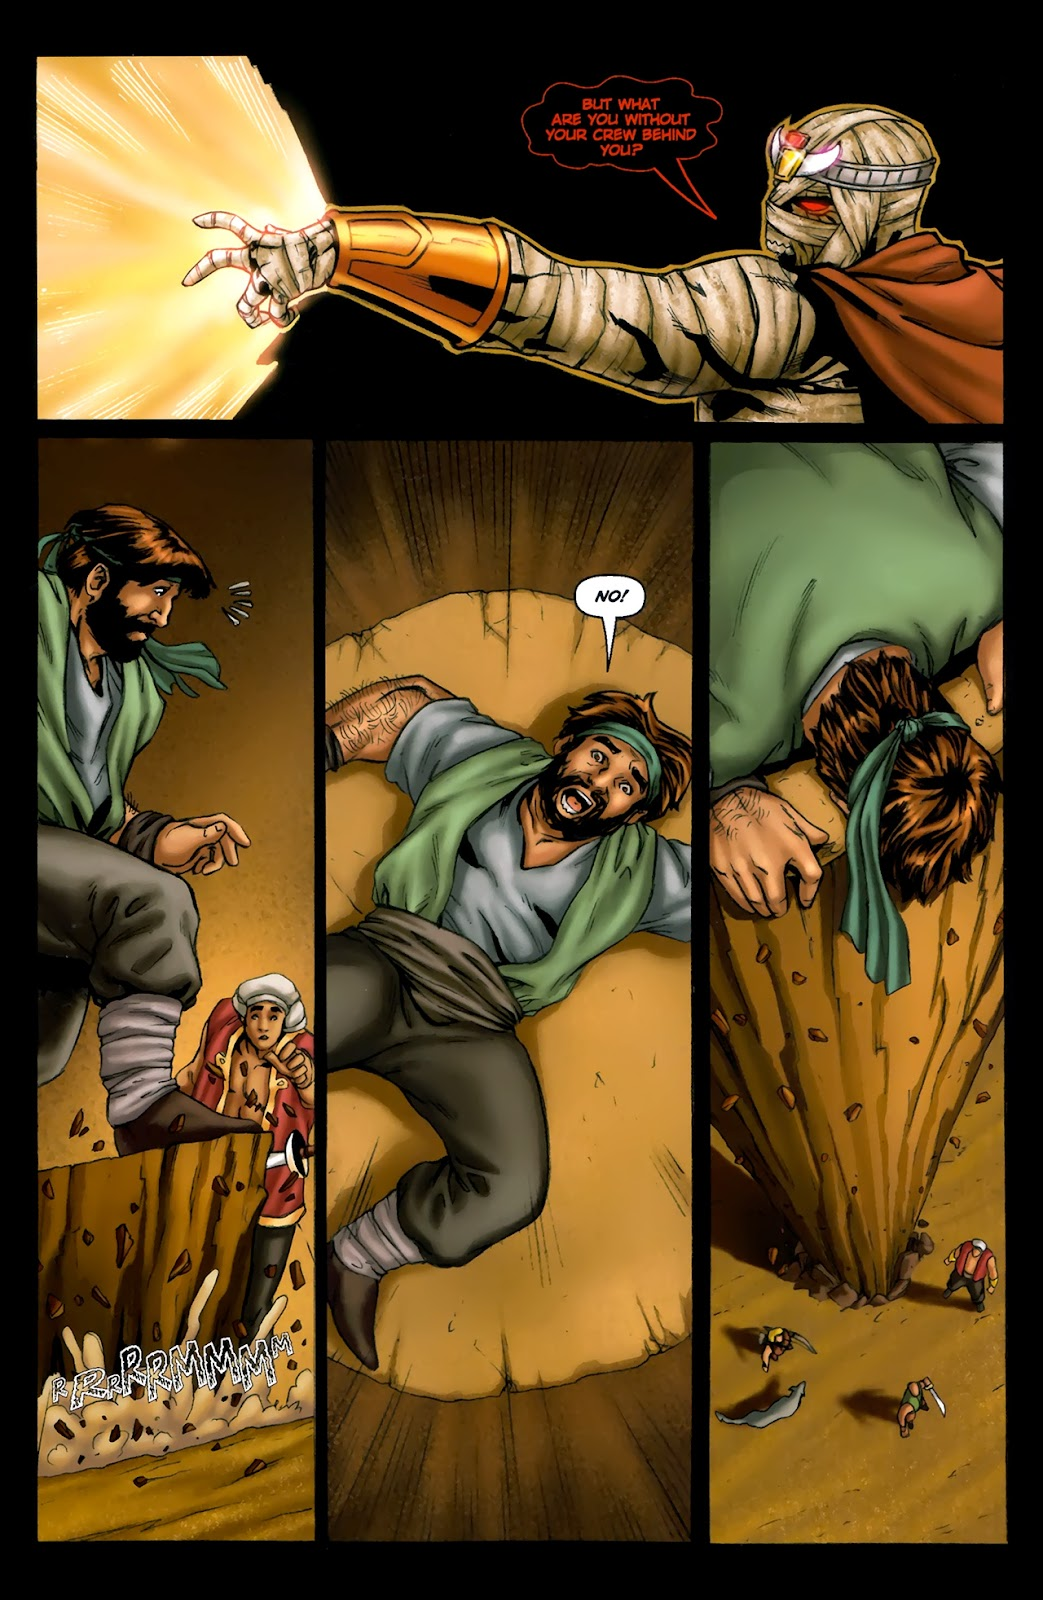 1001 Arabian Nights: The Adventures of Sinbad Issue #13 Page 5